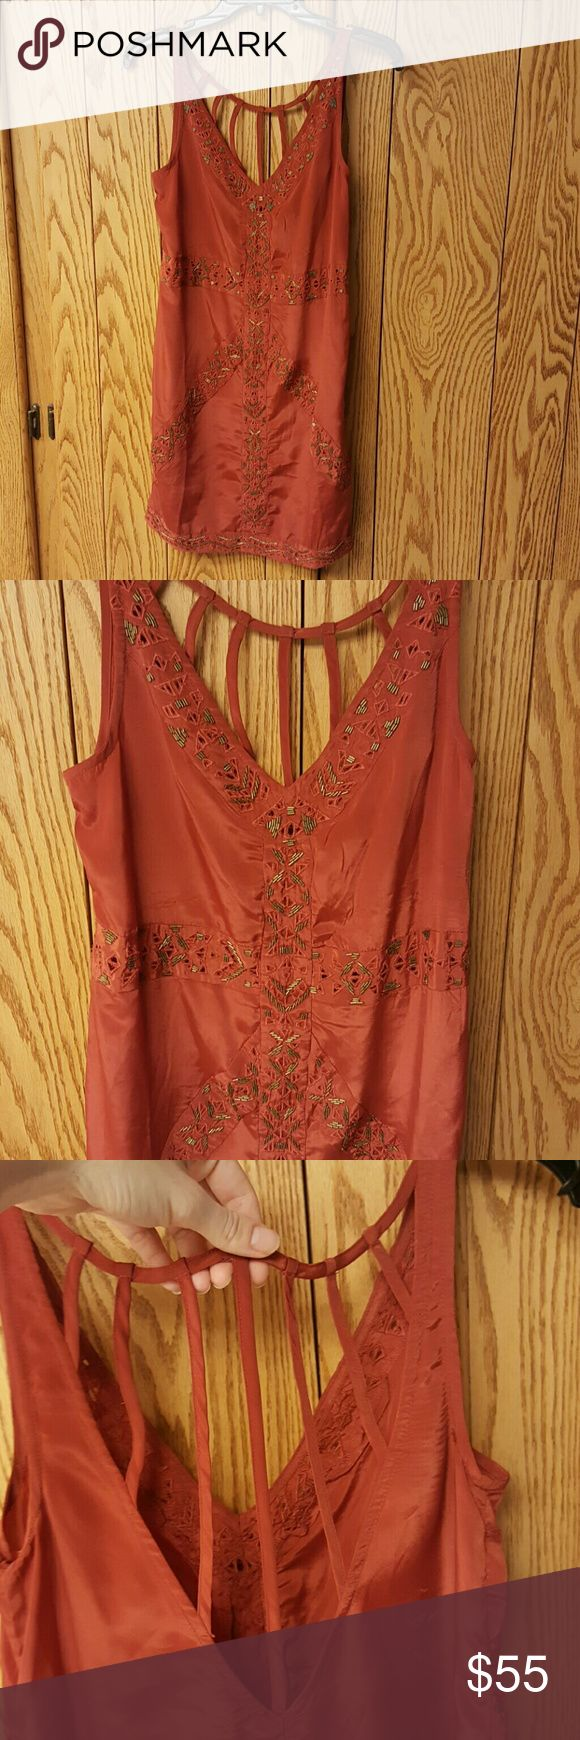 Urban Outfitters burnt orange festival dress Amazing condition with some wear, beads are in good condition from what I can see. Ecote is a Urban Outfitters brand. Urban Outfitters Dresses